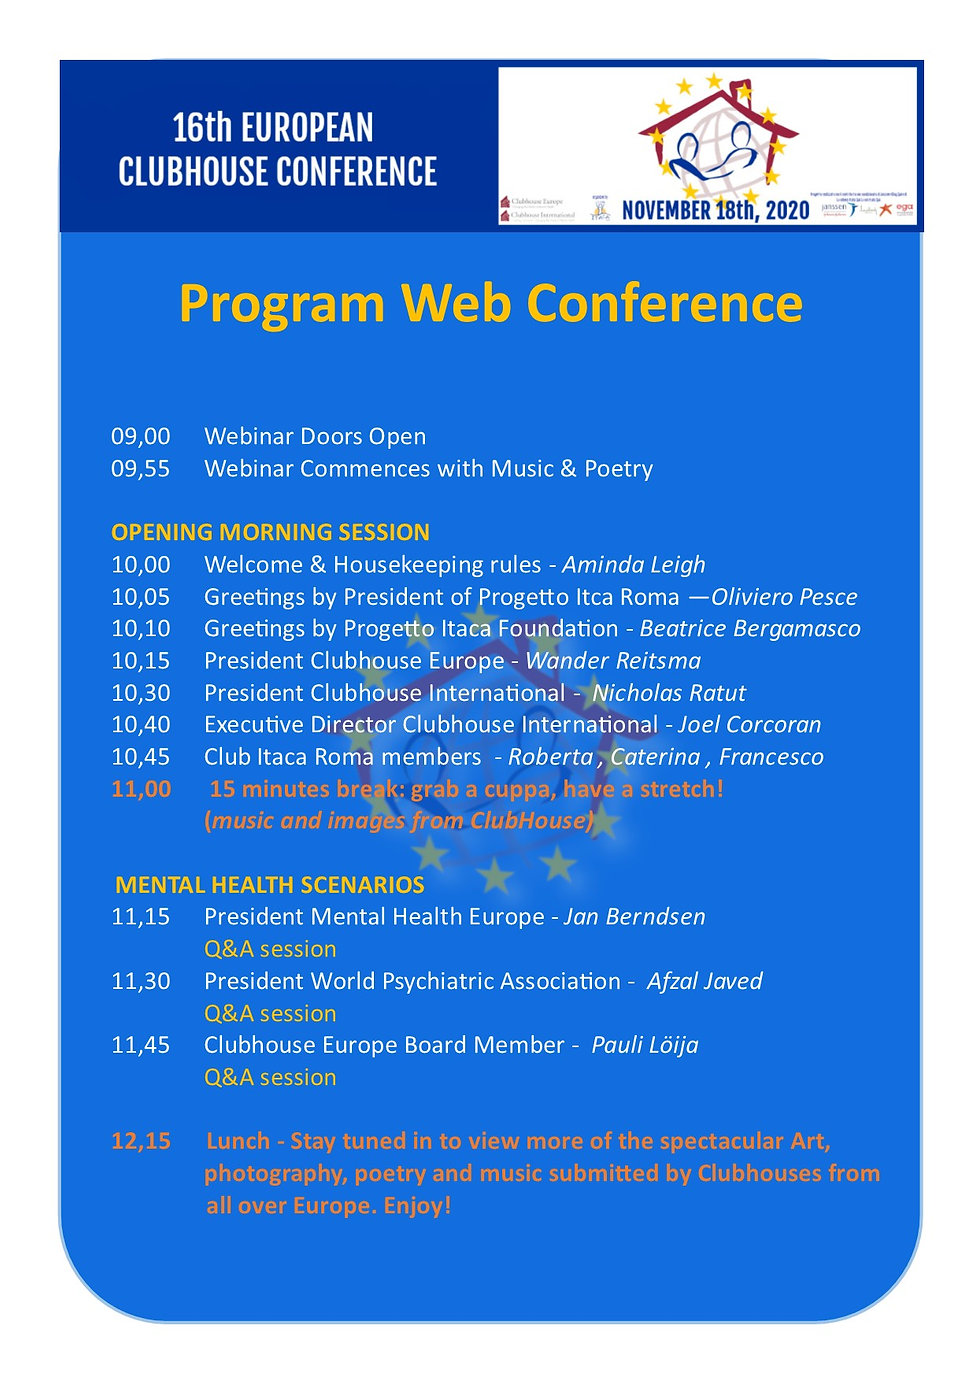 Program Web Conference_p1_ok4.jpg